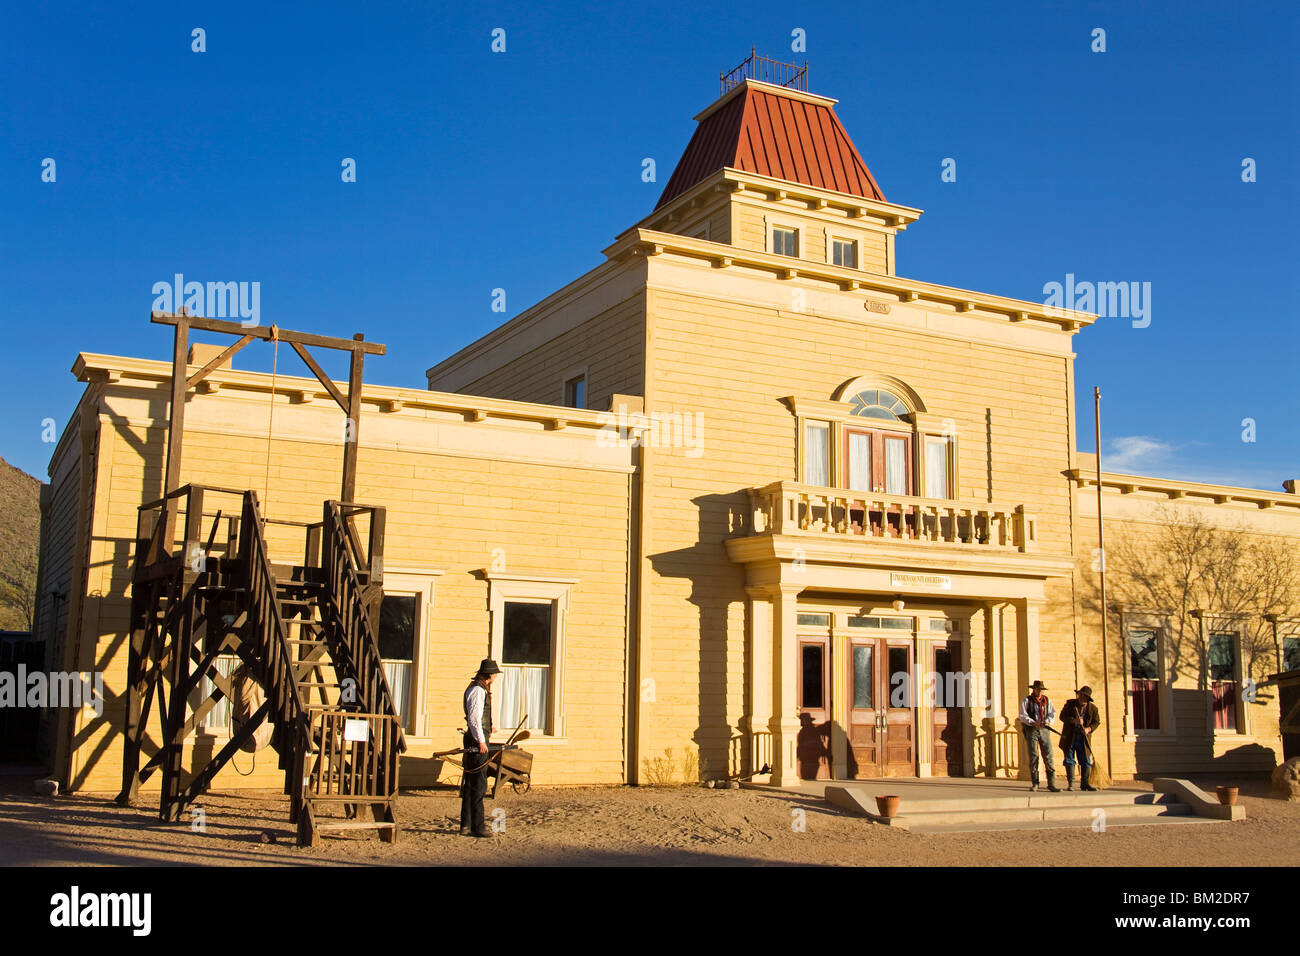 Lincoln County Courthouse in Old Tucson Studios, Tucson, Arizona, USA - Stock Image